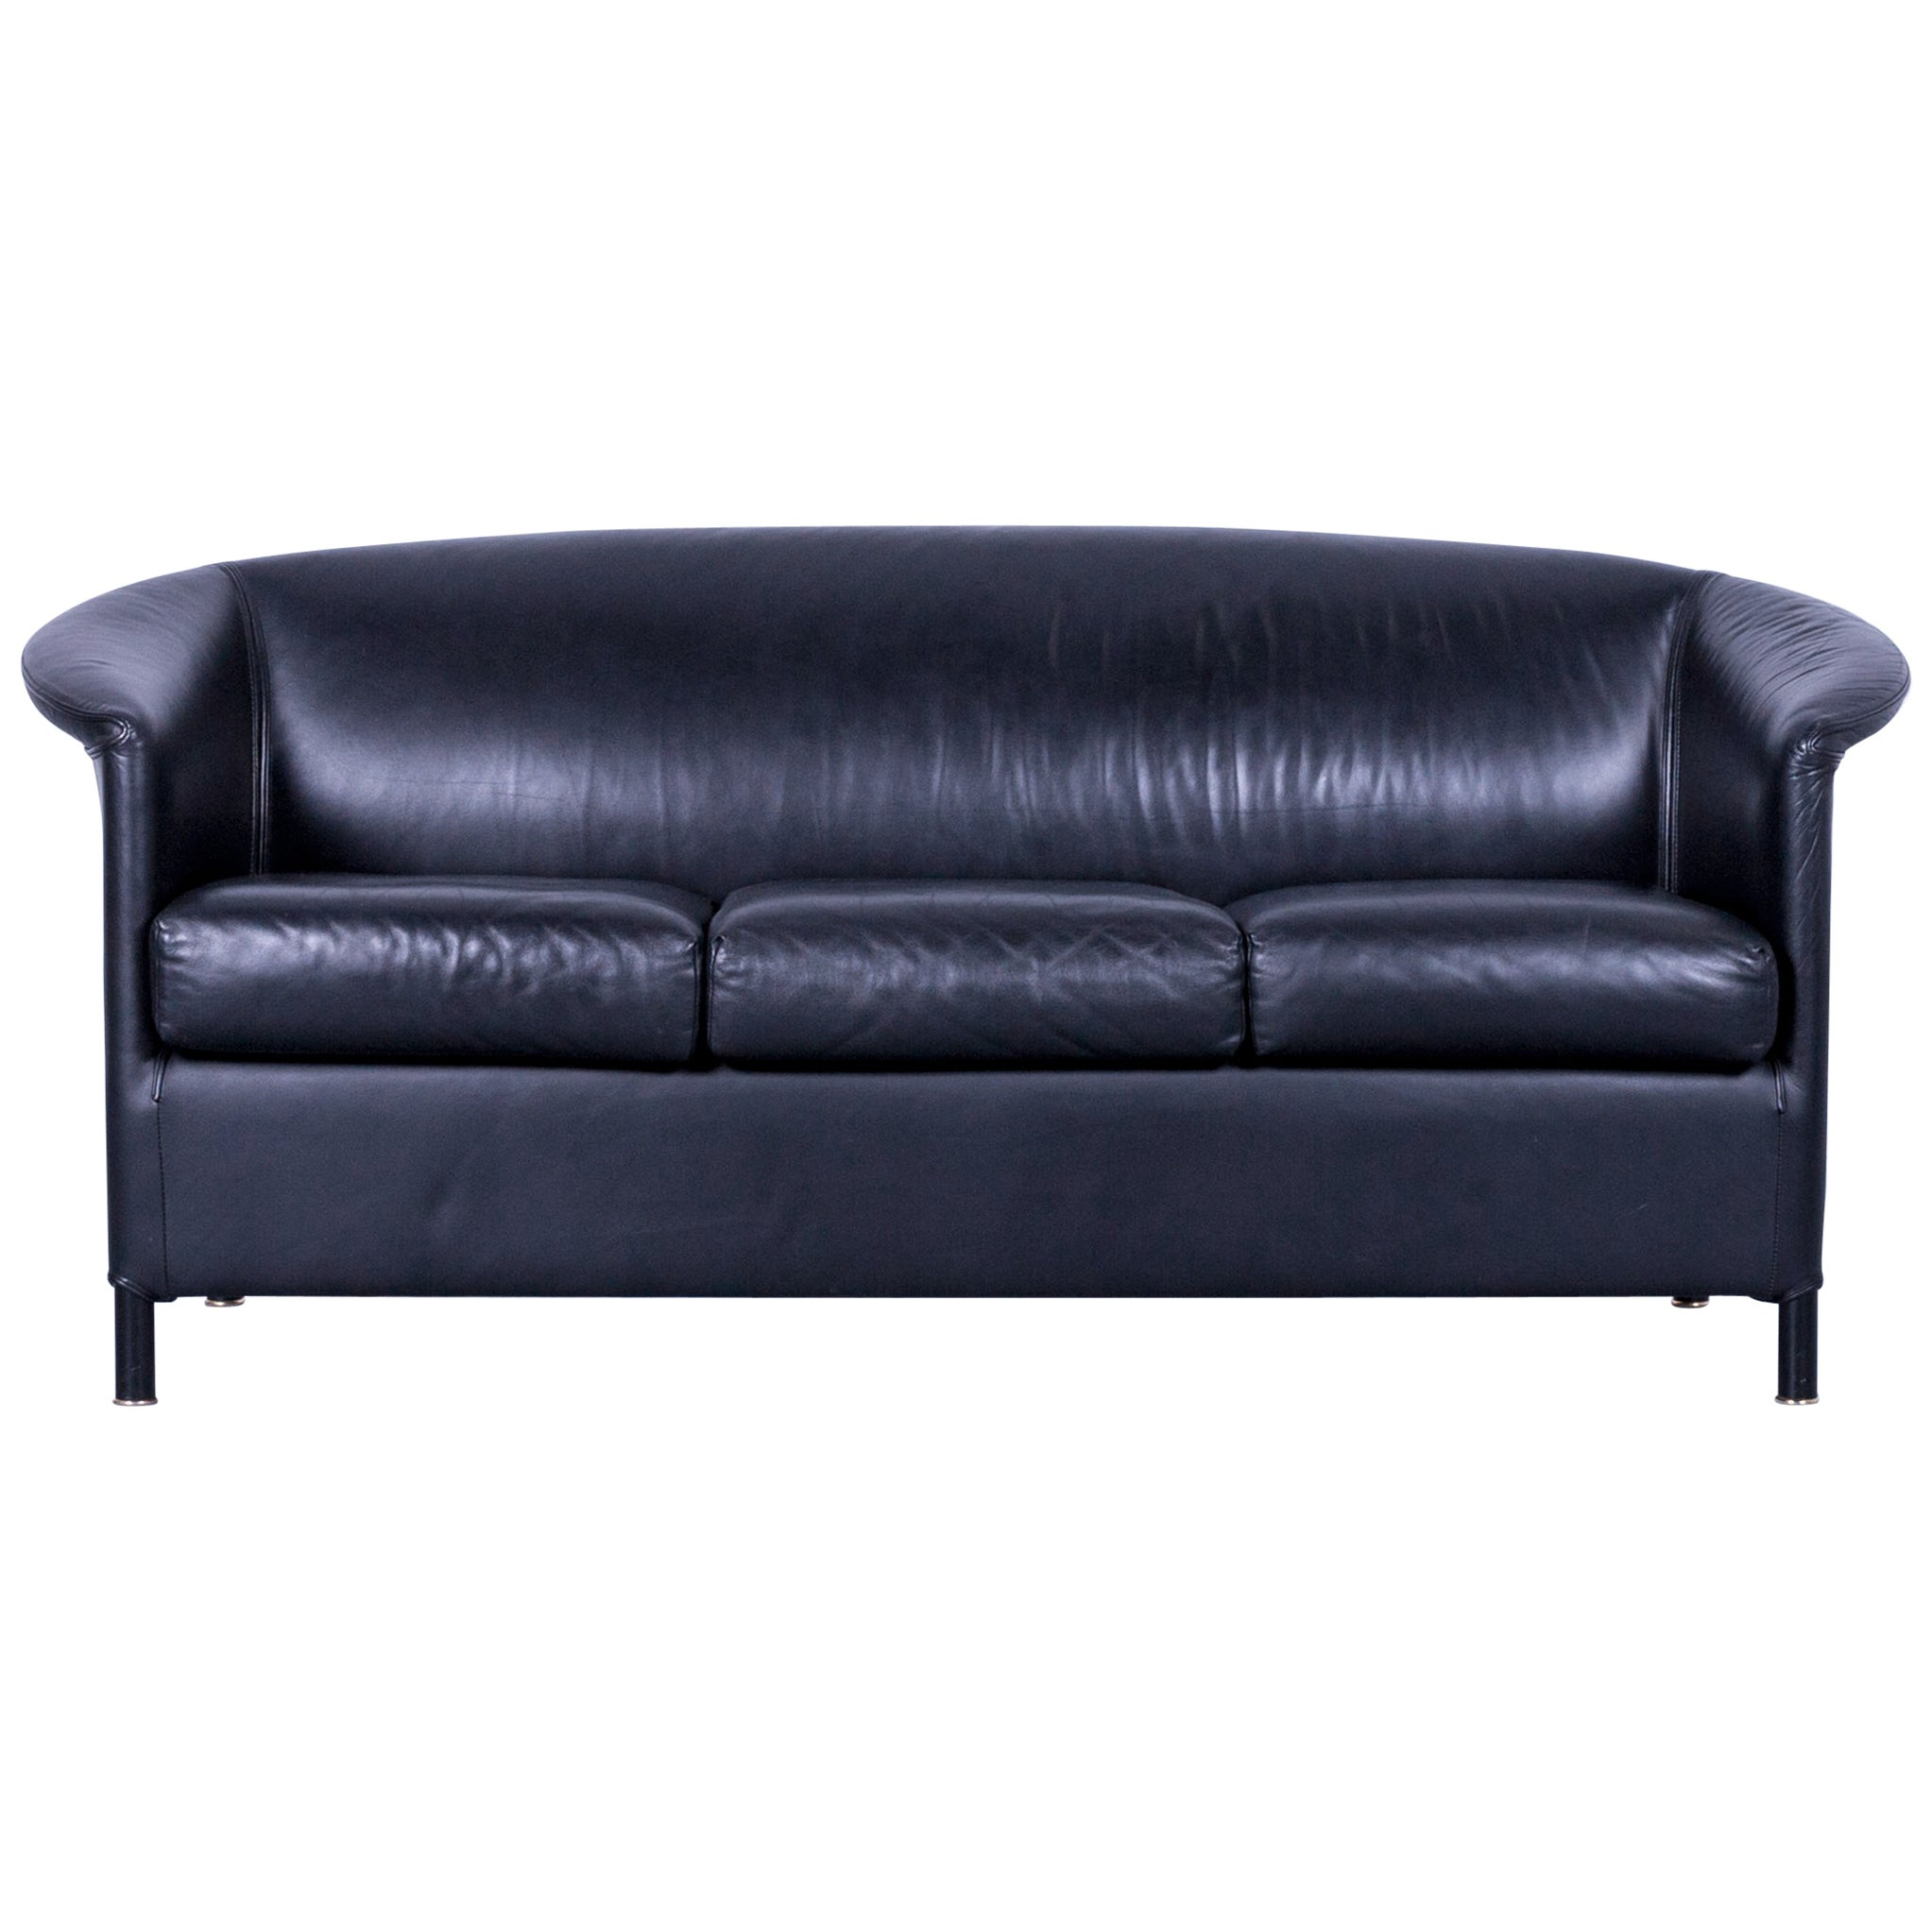 Quotes On Sofa Wittmann Aura Designer Black Leather Three Seater Sofa Or Couch